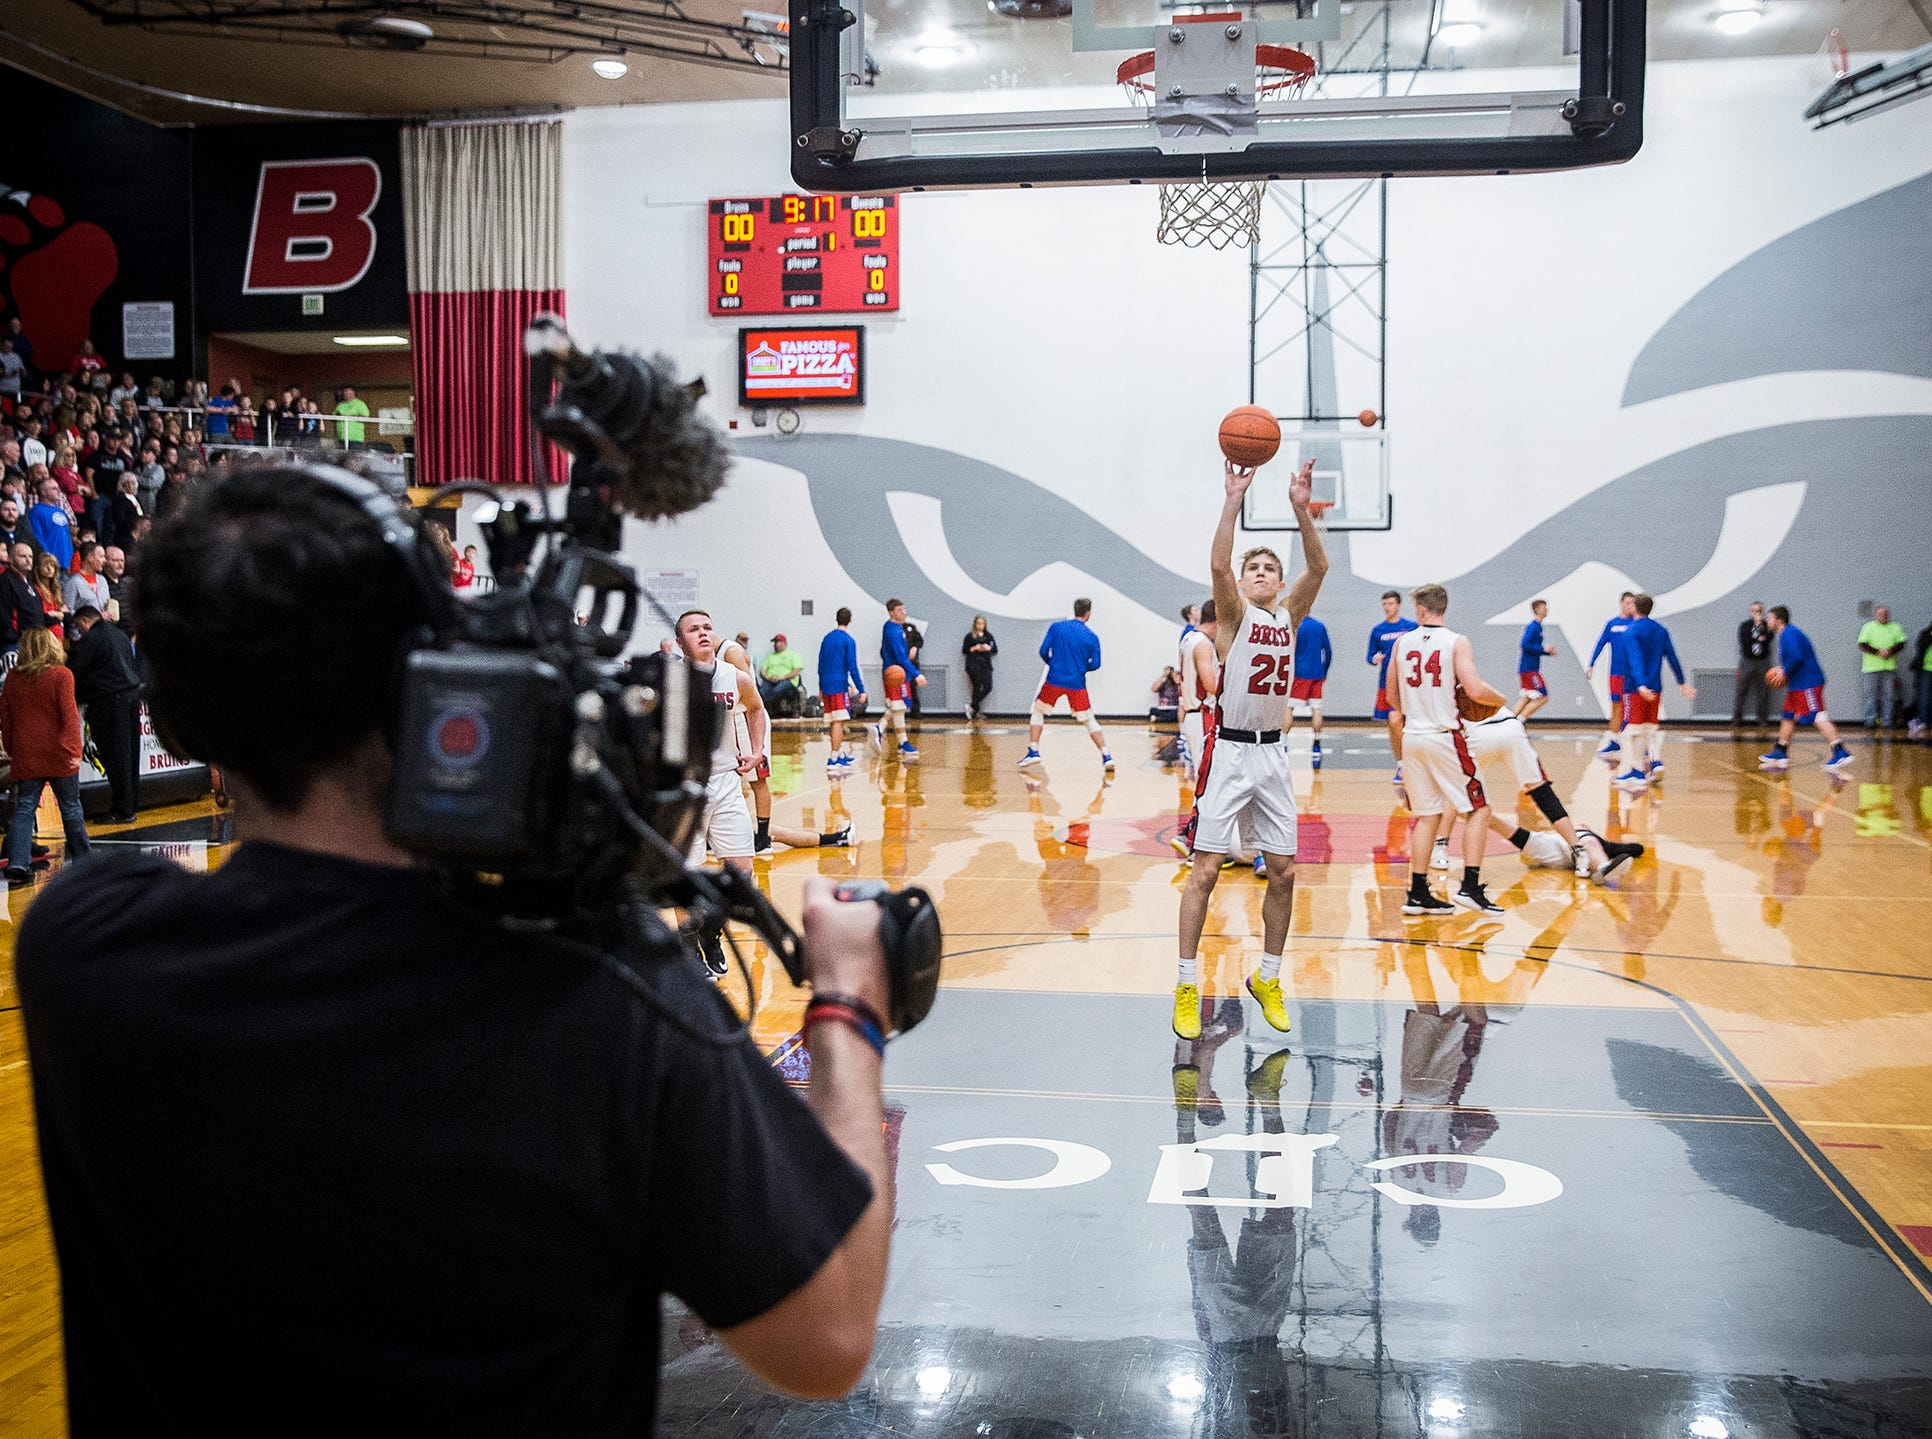 A film crew shoots a segment on Blackford for the Indiana Pacers during their game against Jay County.